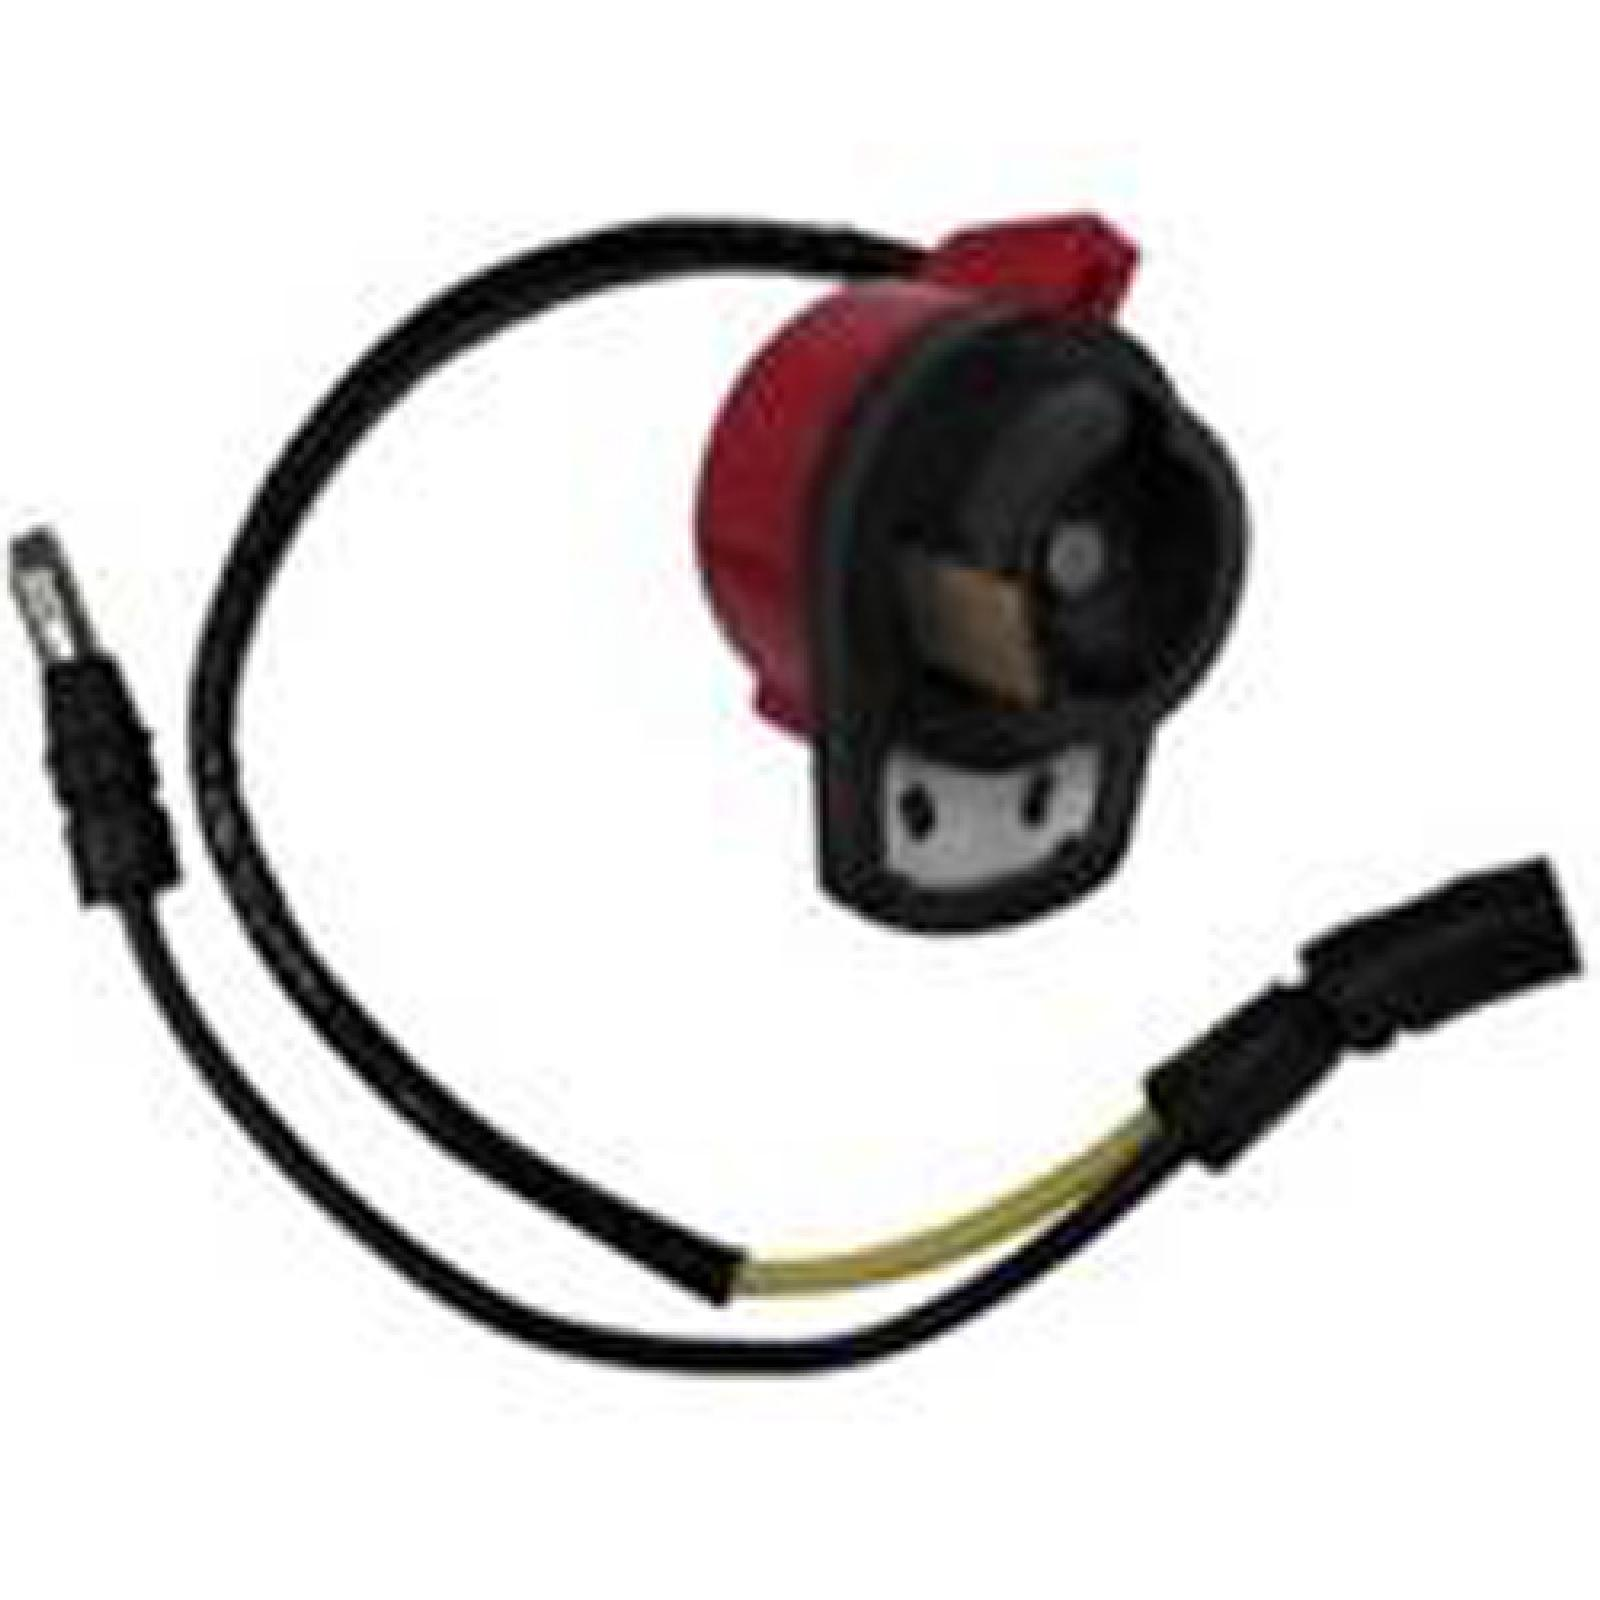 Honda GX340 Engine Stop Switch